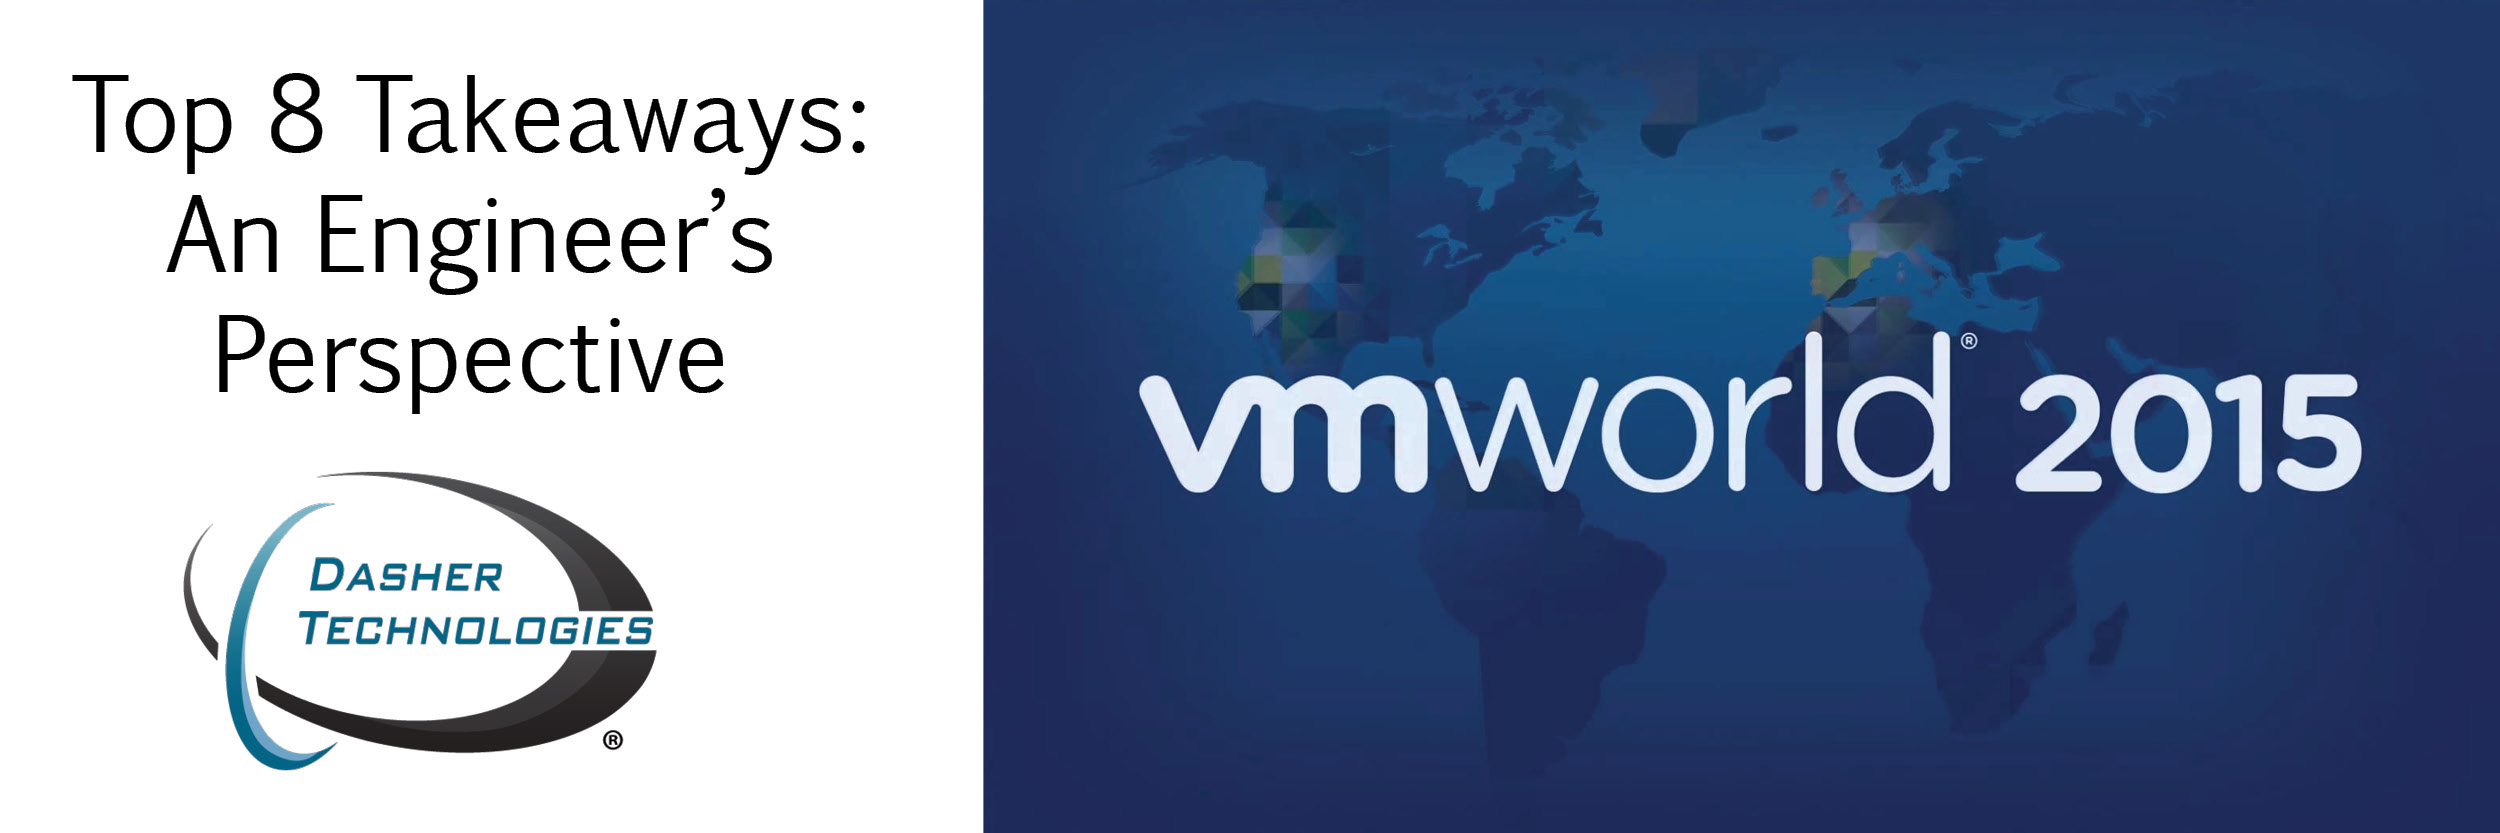 VMworld Top 8 Takeaways: An Engineer's Perspective